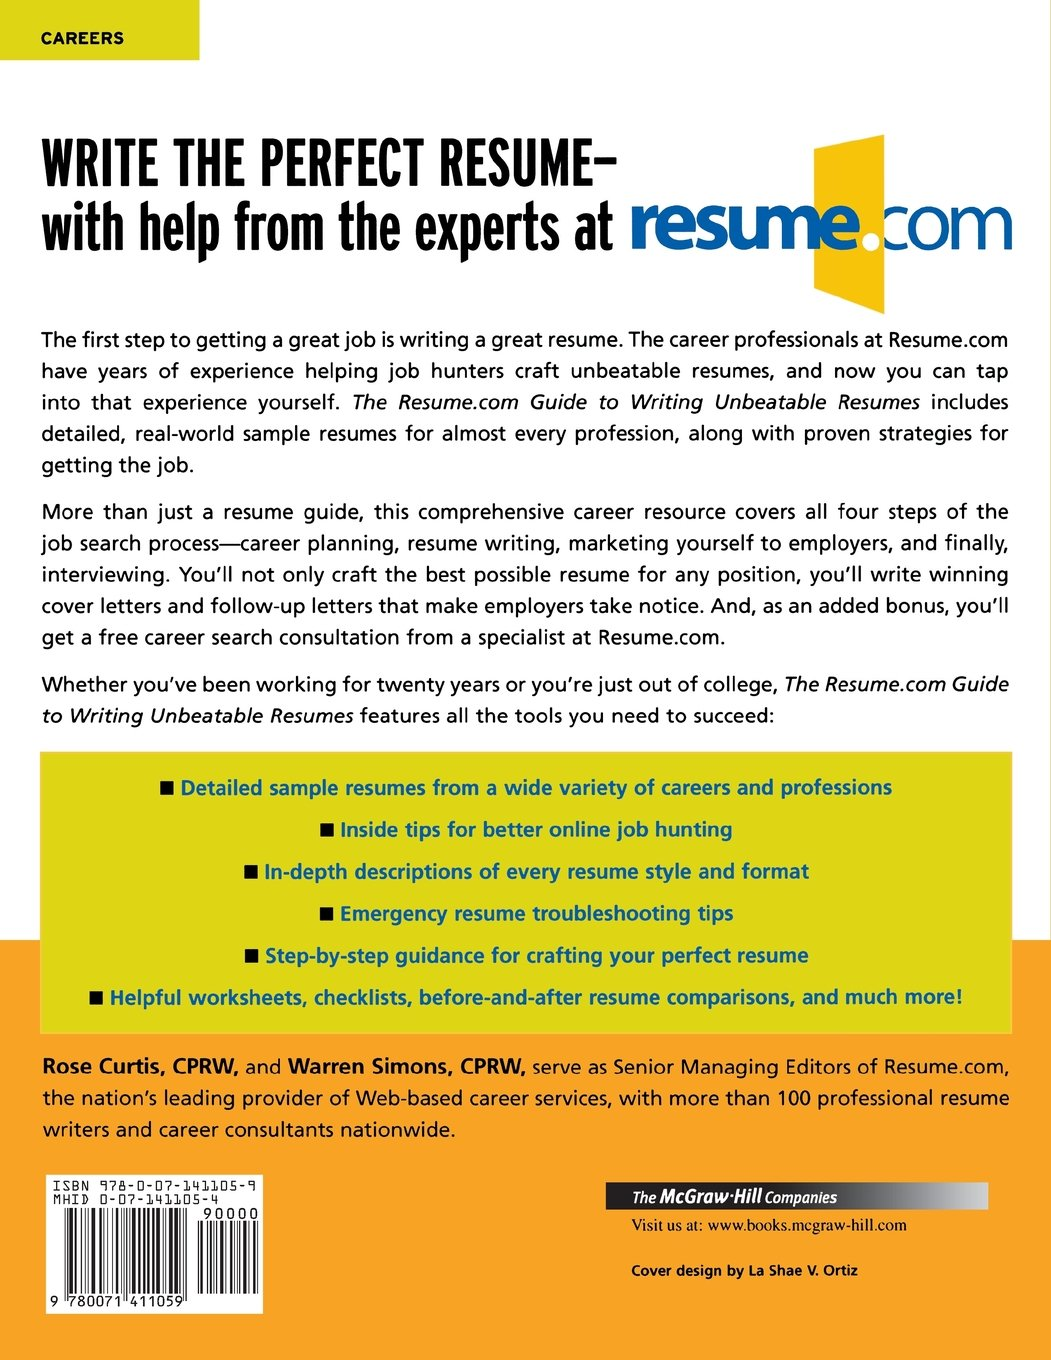 com guide to writing unbeatable resumes warren simons rose curtis 9780071411059 amazoncom books - How To Make The Best Resume Possible